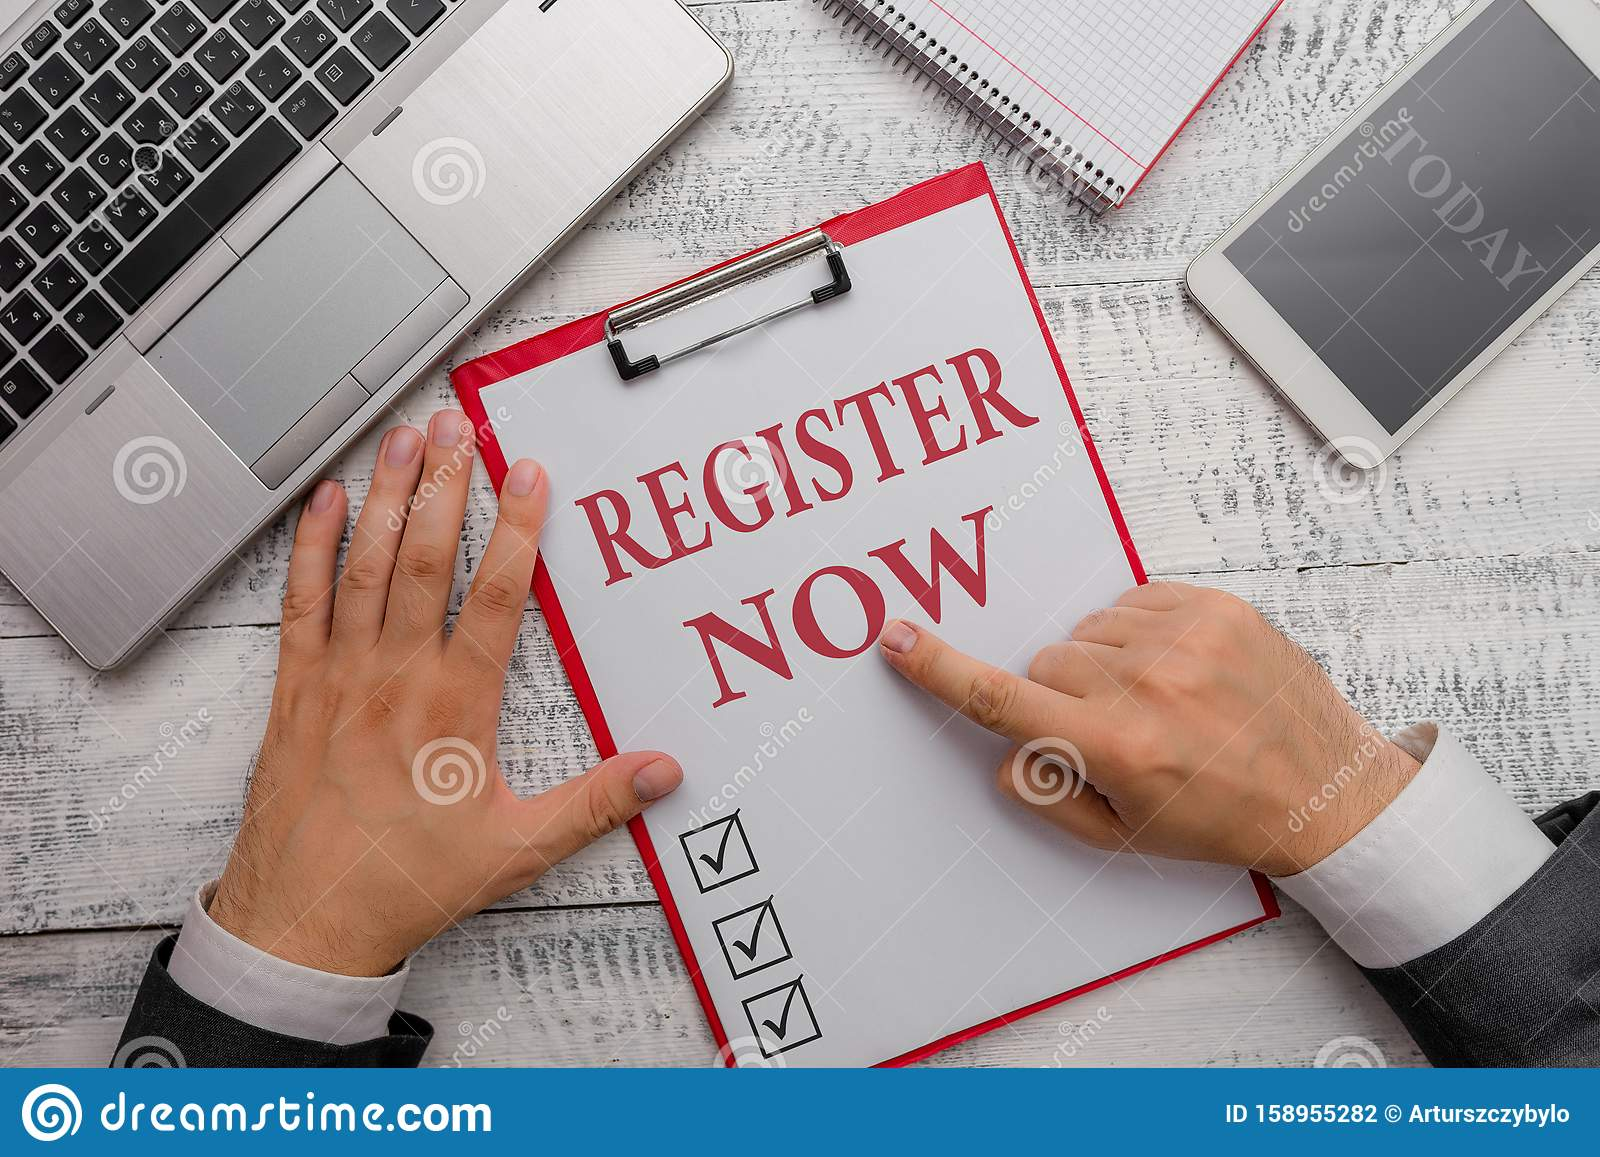 Handwriting Text Register Now Concept Meaning Name In An Official